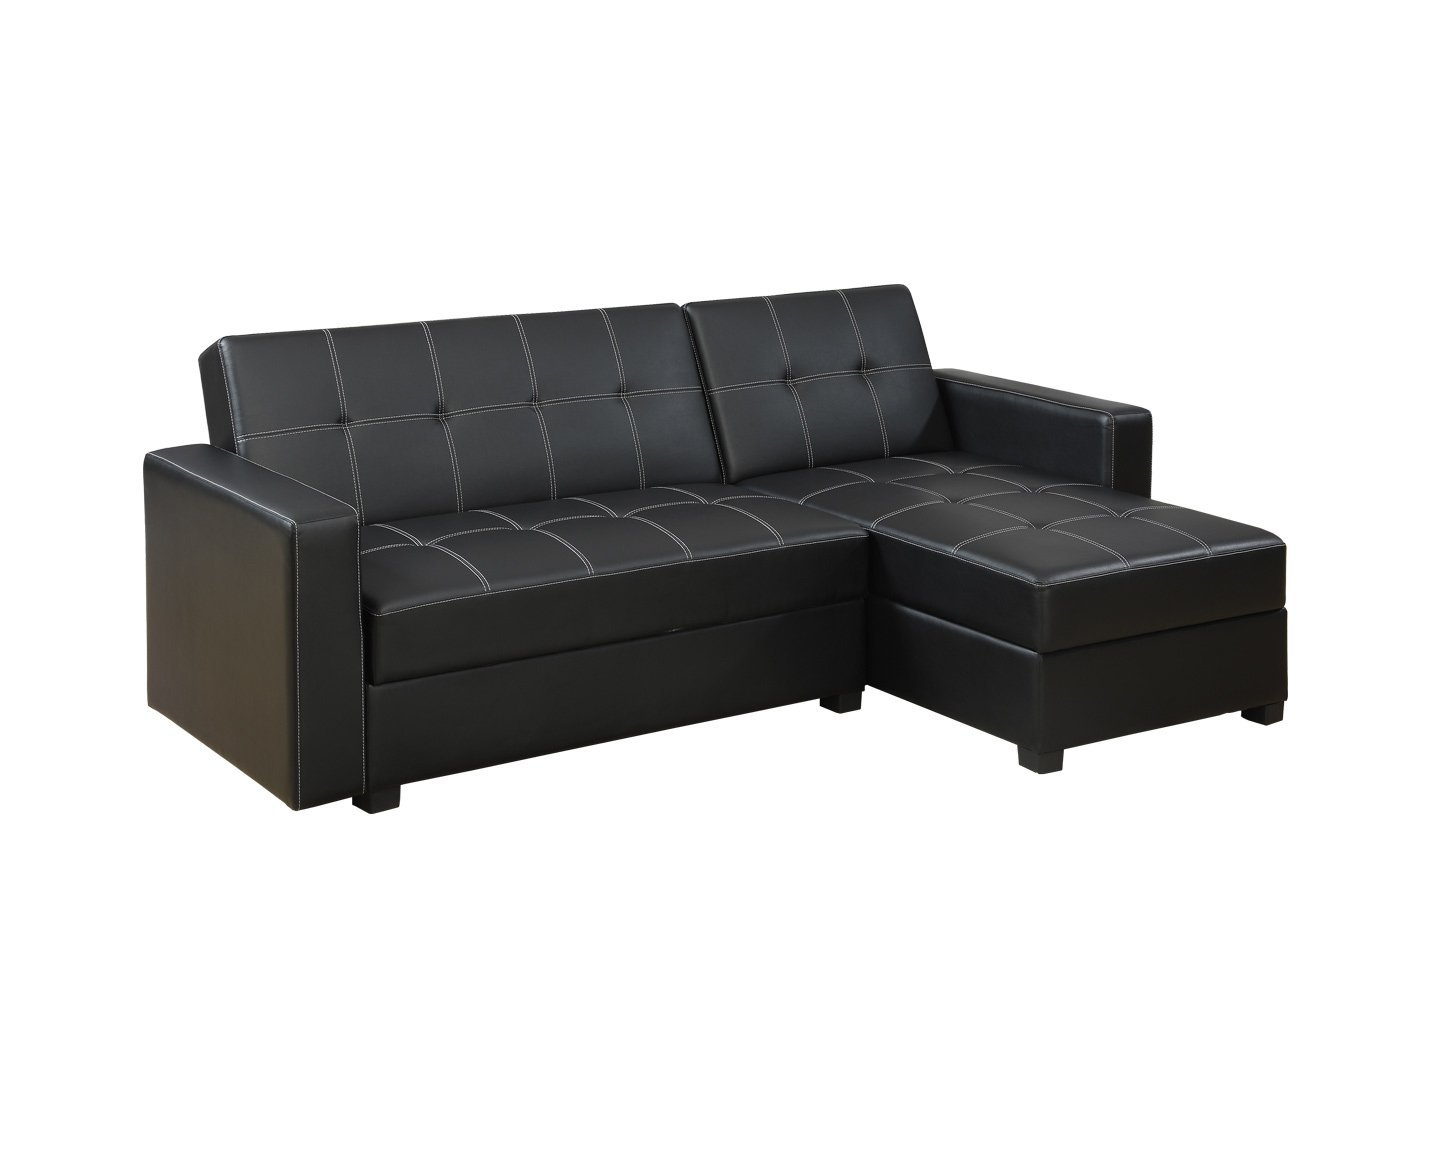 Poundex F7894 Bobkona Medora Faux Leather Left or Right Hand Chaise Adjustable Sectional with Compartment, Black